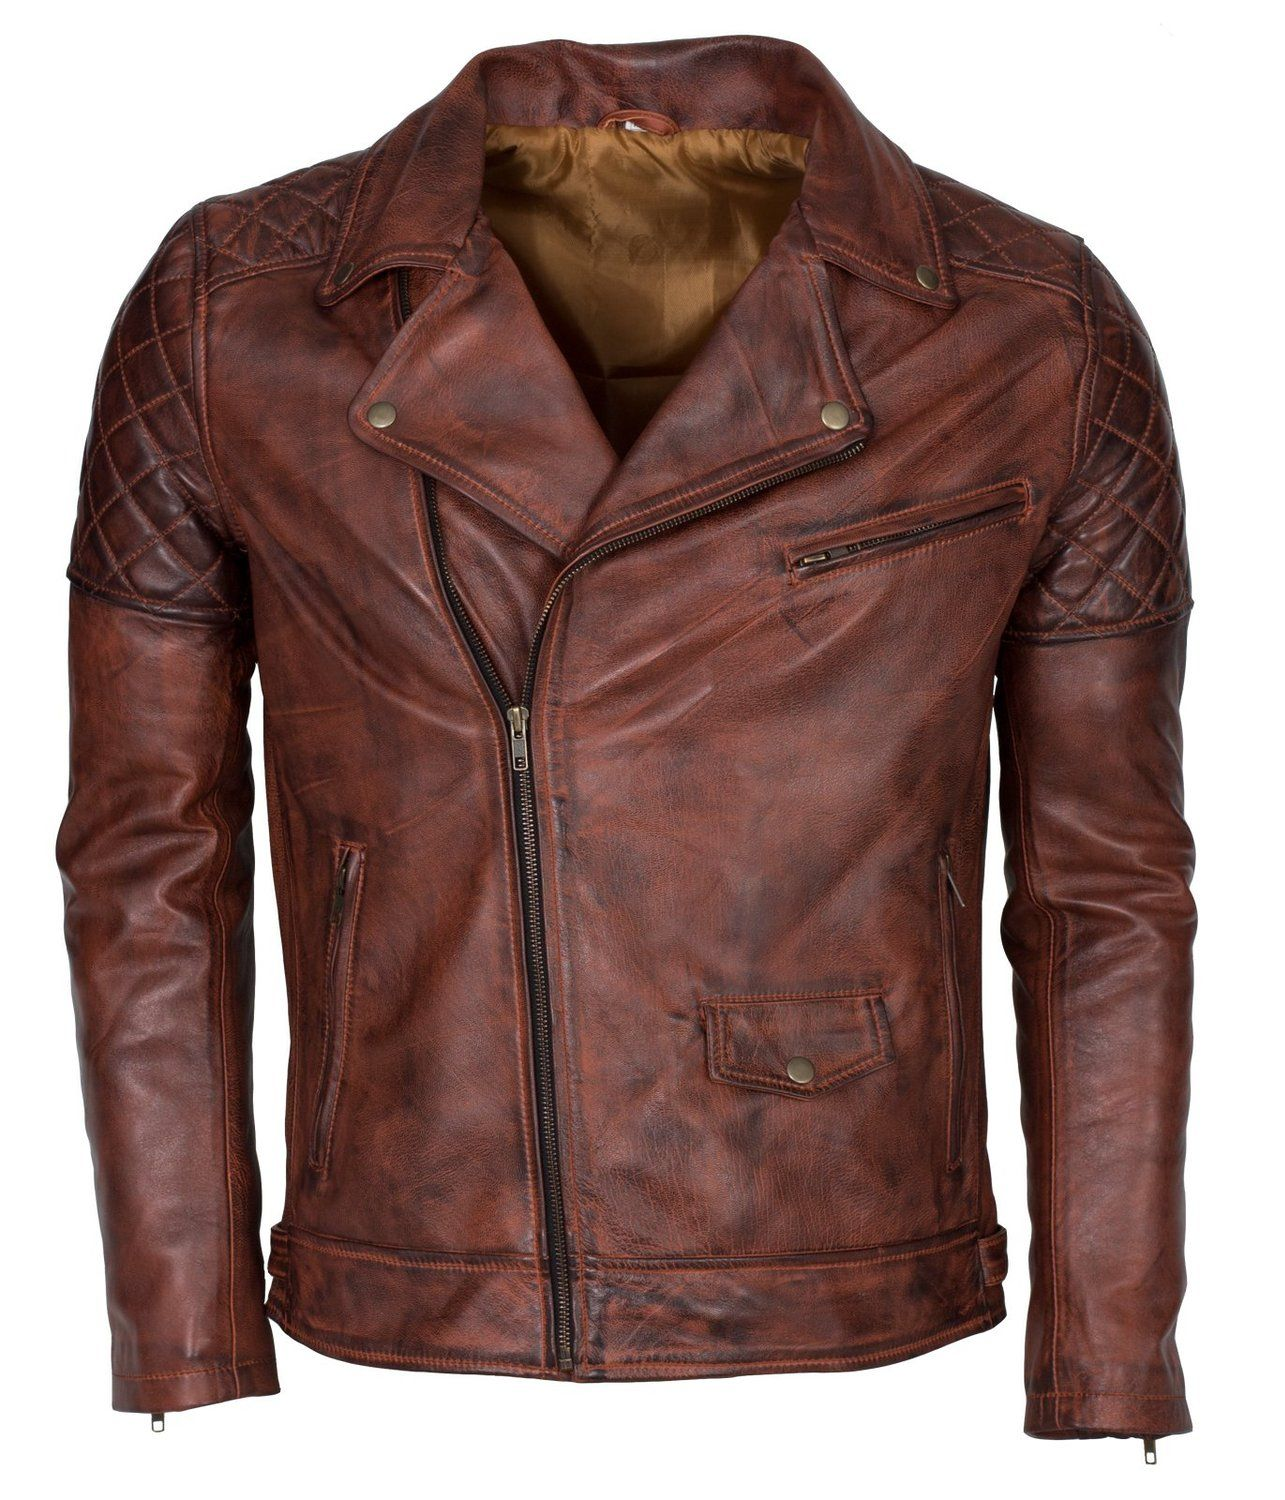 Brown Waxed Brando Designer Italian Leather Jacket at